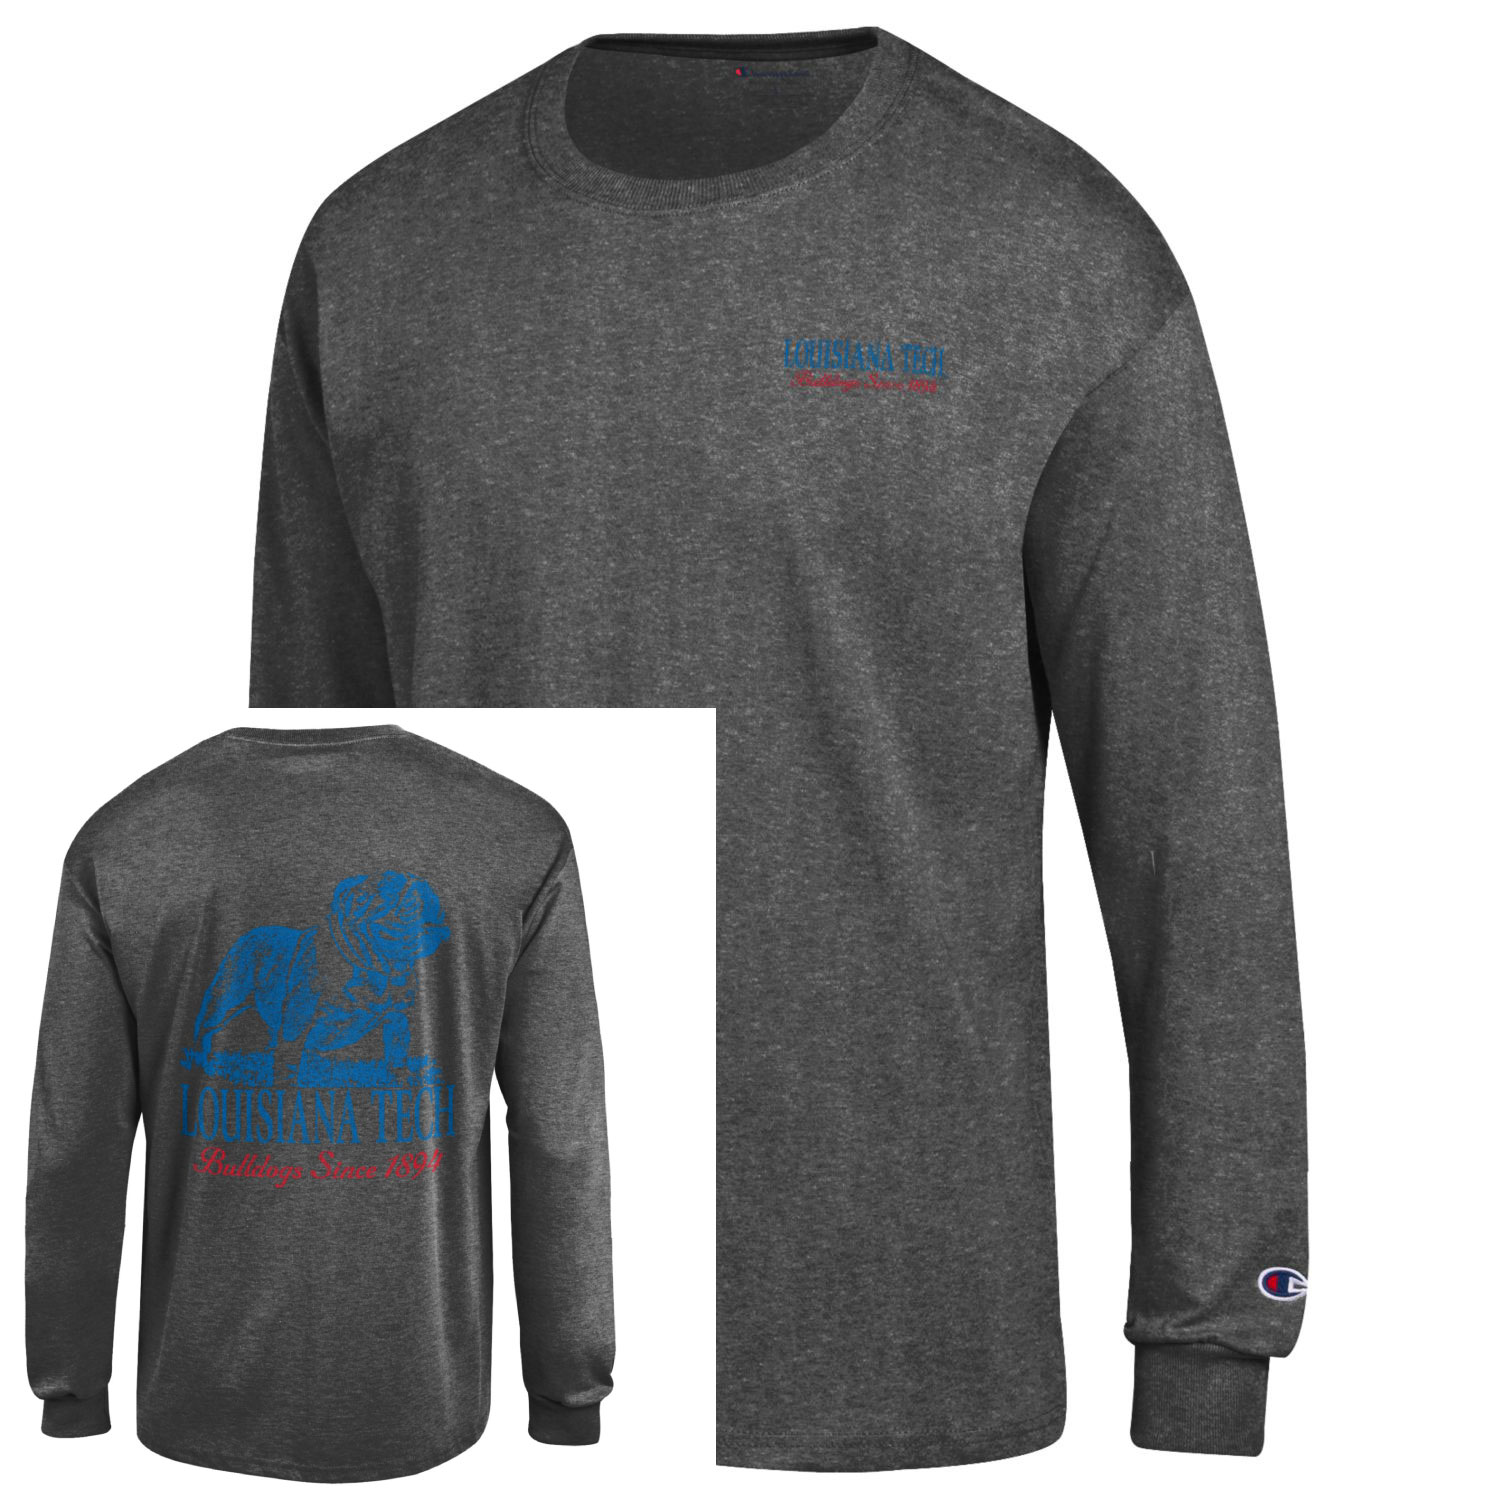 La Tech Long Sleeve Tee